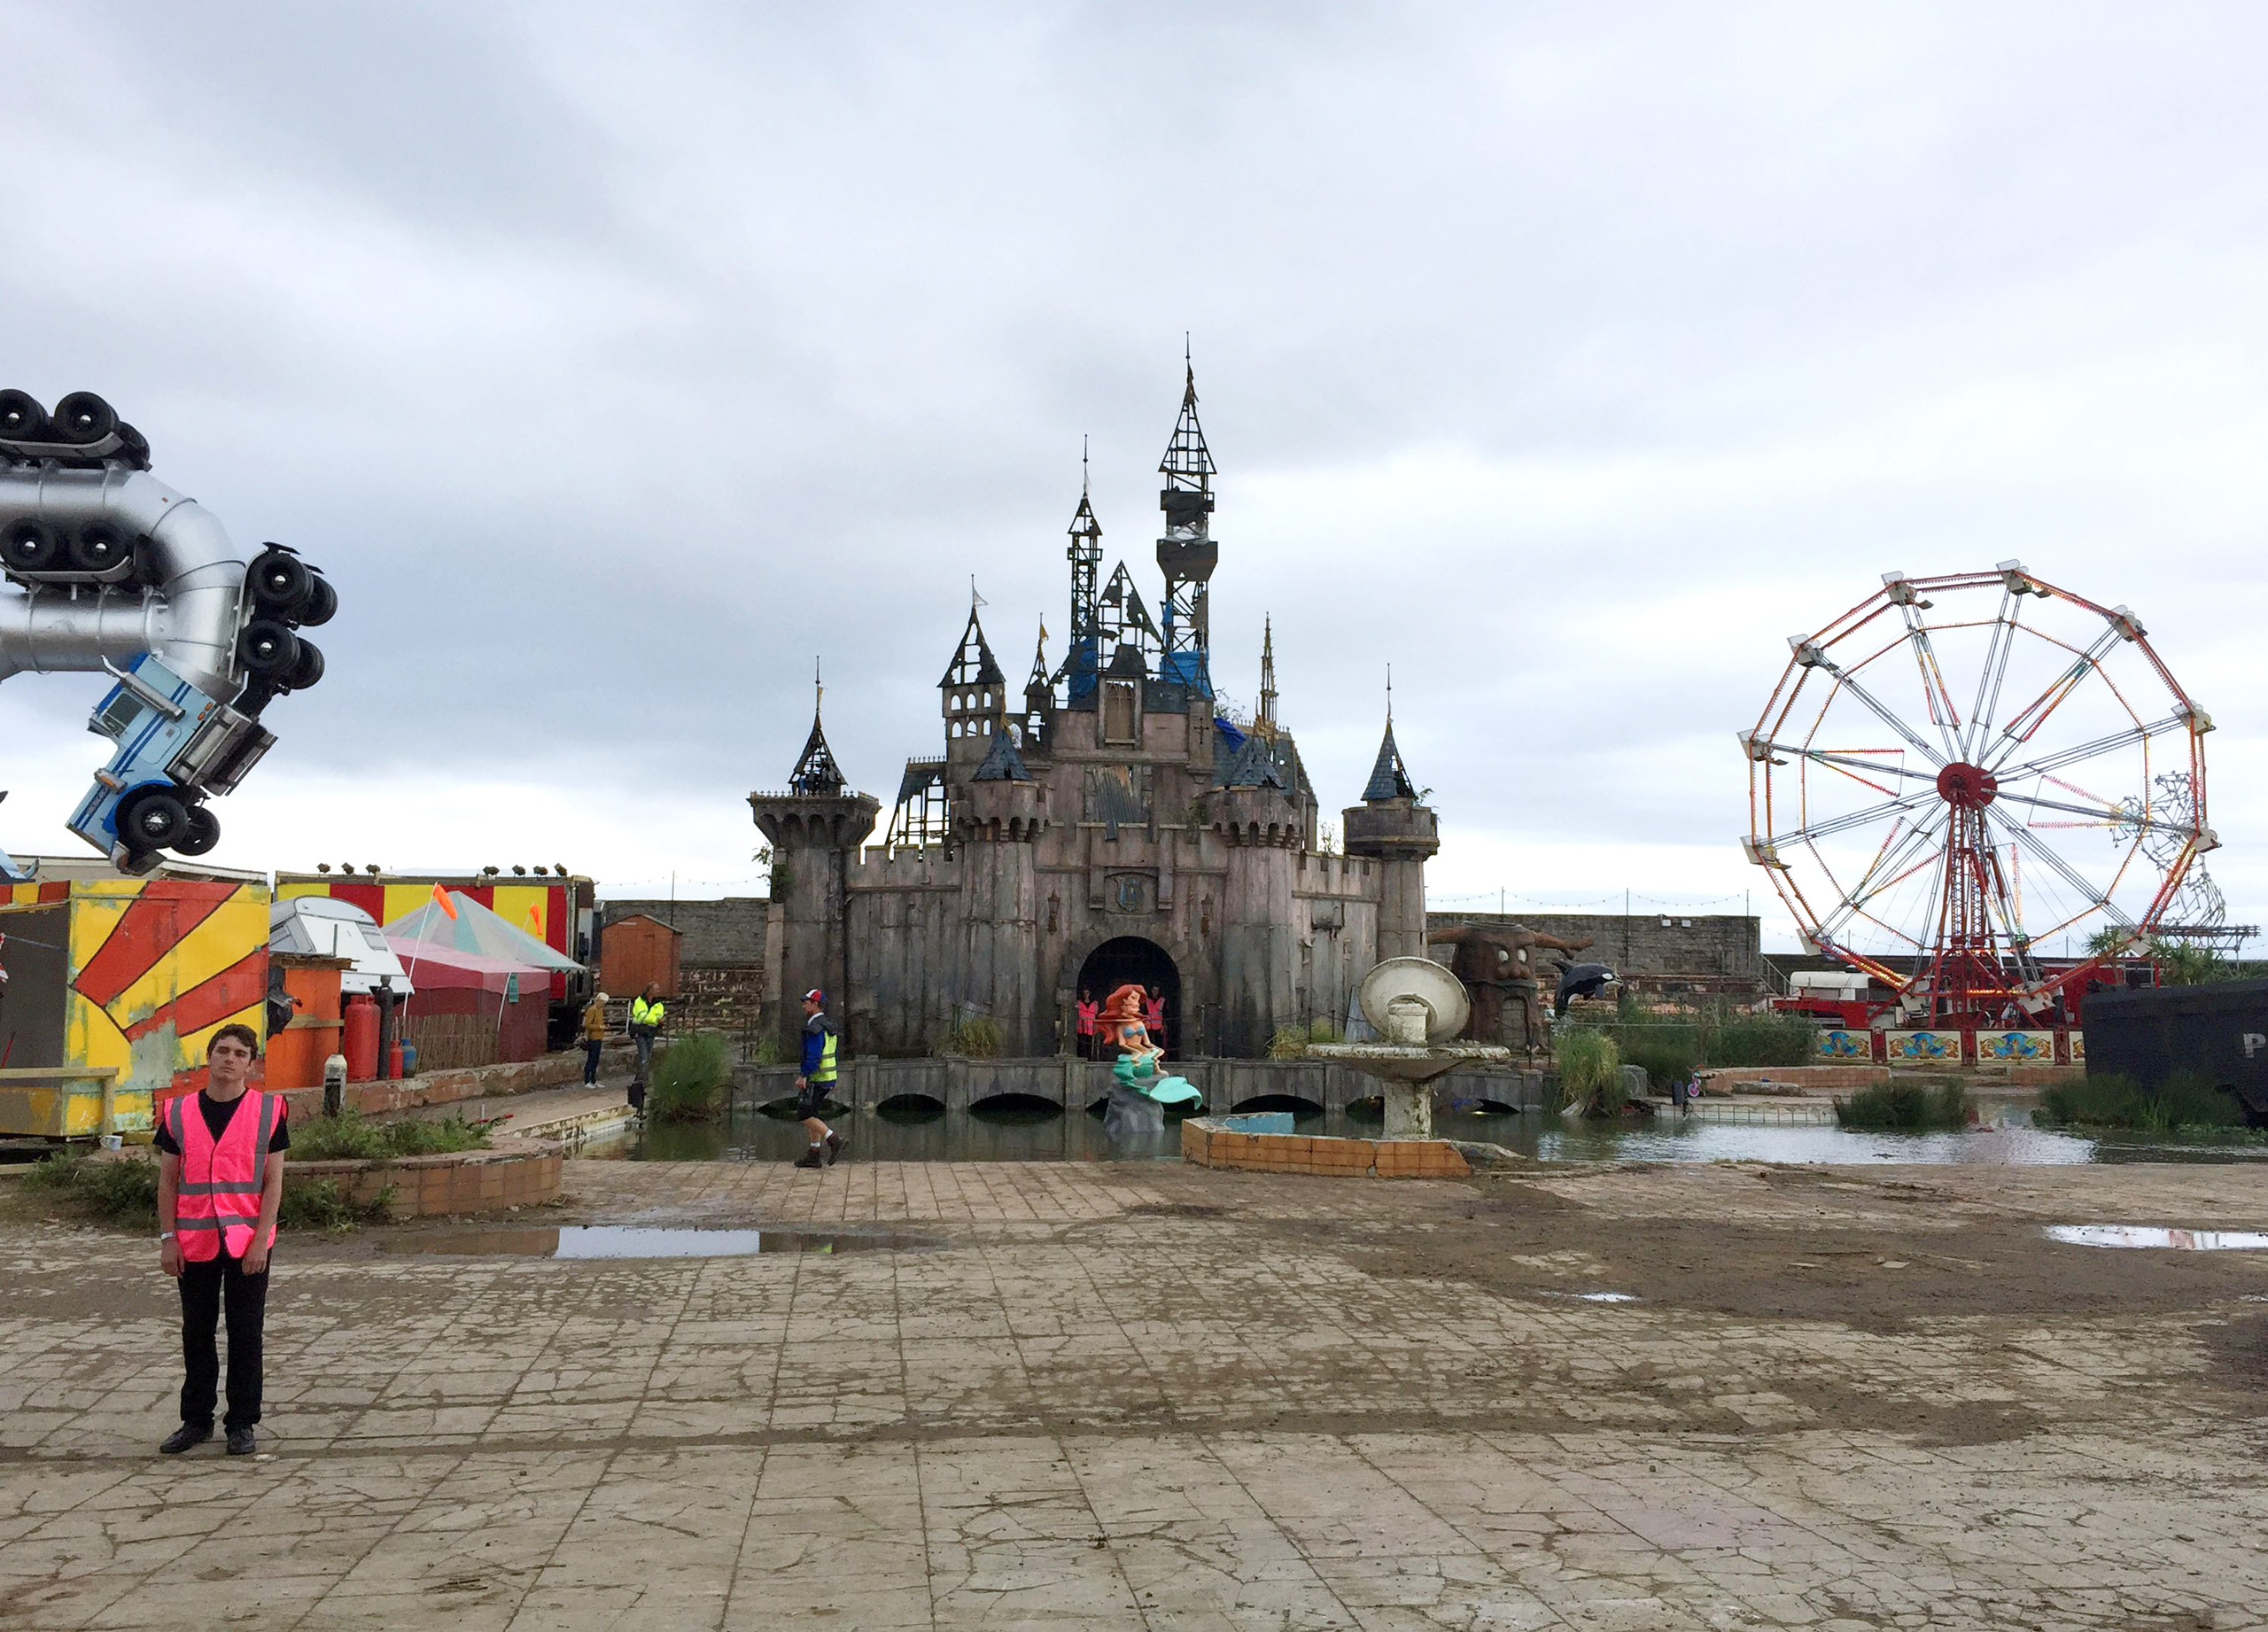 A general view of Dismaland Bemusement Park, a collection of satirical art and sculpture by the graffiti artist Banksy, in Weston-super-Mare, Somerset, England.